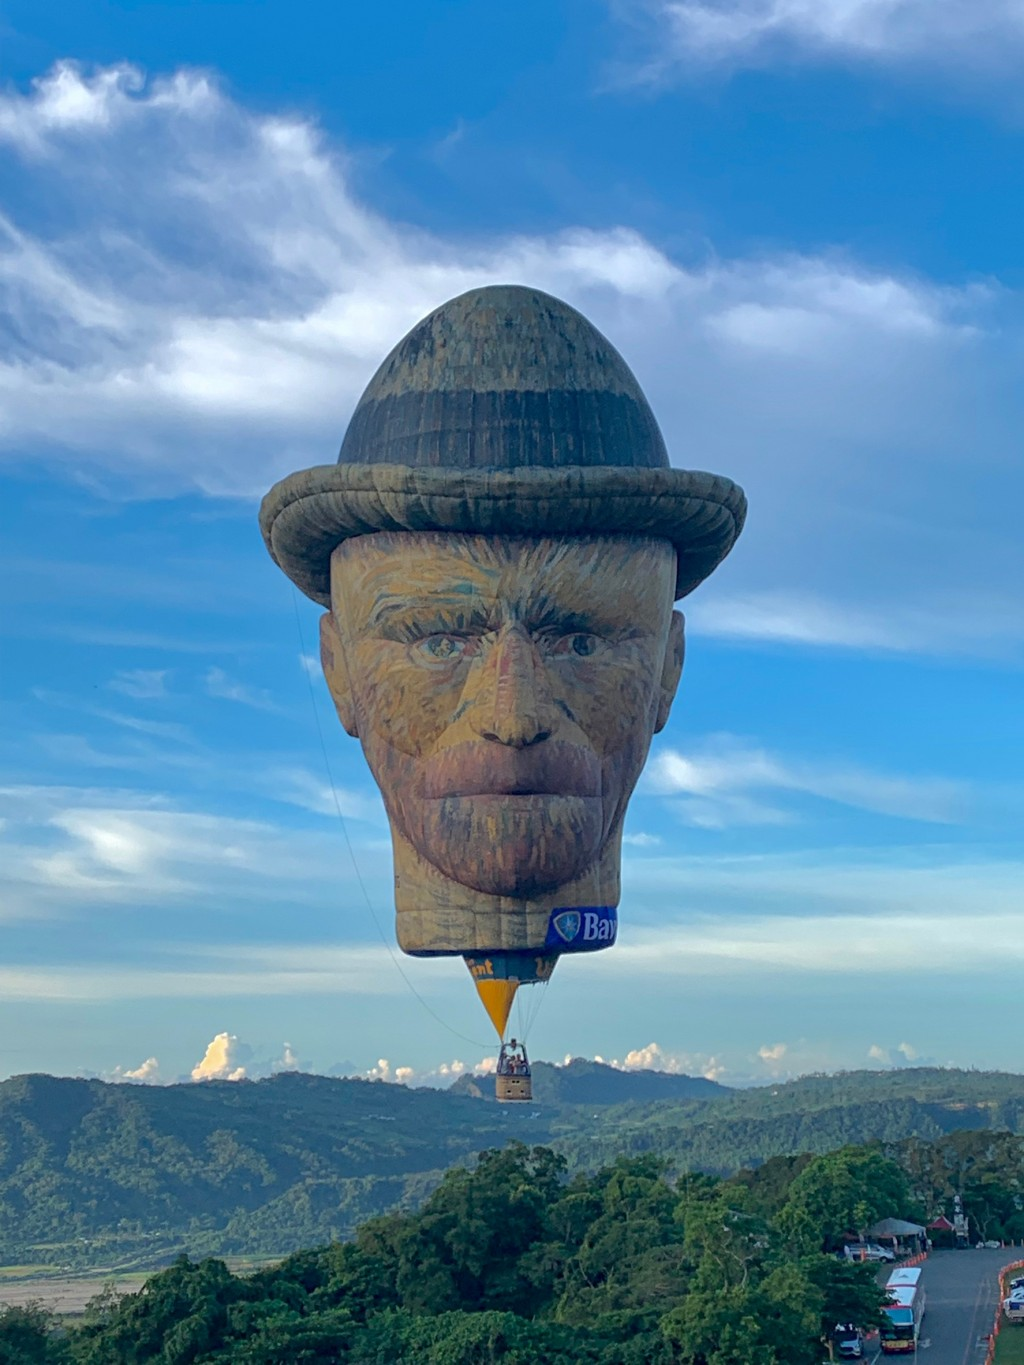 Vincent van Gogh floating above Taitung (photo courtesy of the Taitung County Government).